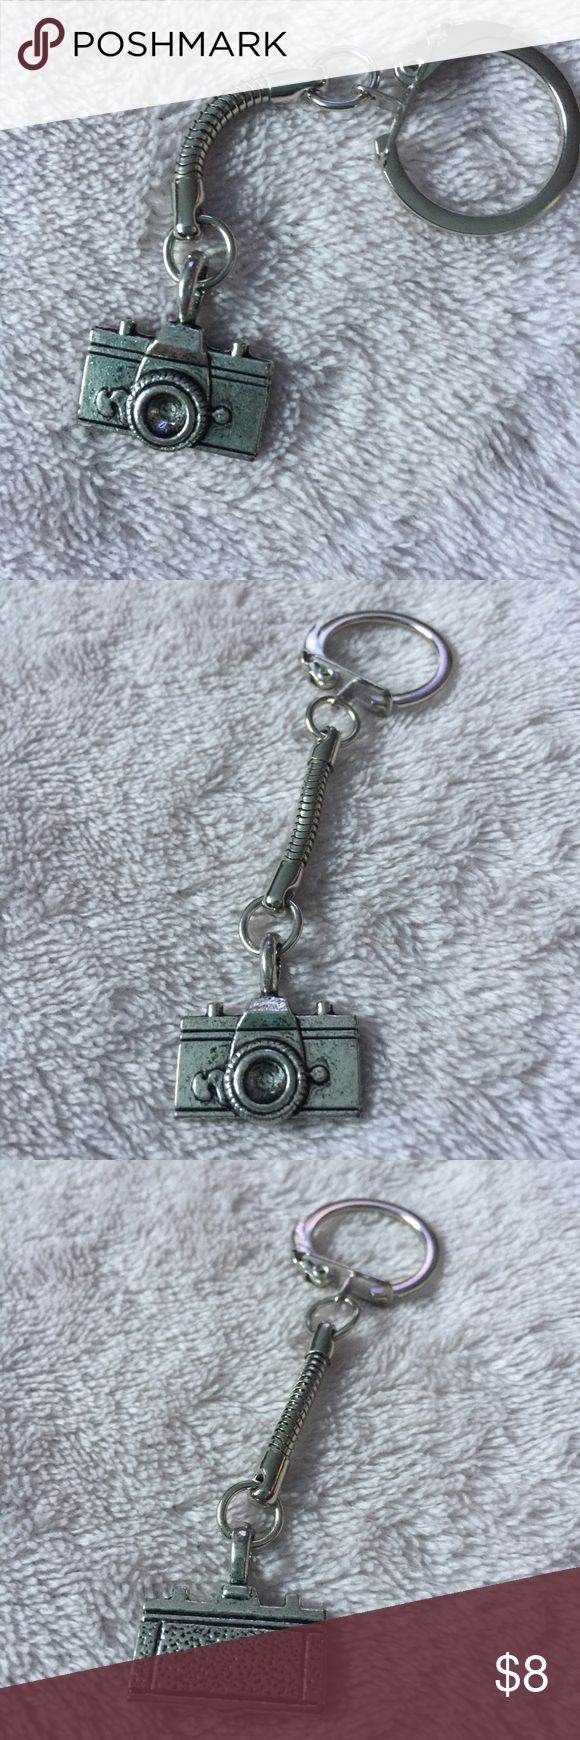 🎁Holiday Sale🎁 Camera Keychain Keychain featuring a little tiny camera. A great gift 🎁 for the holidays.                                              ❌ No trades.                                                                ✅ Discount available when you bundle.              🎁 From now till January 1st when you bundle 3 or more listings you will get 30% off. Jewelry